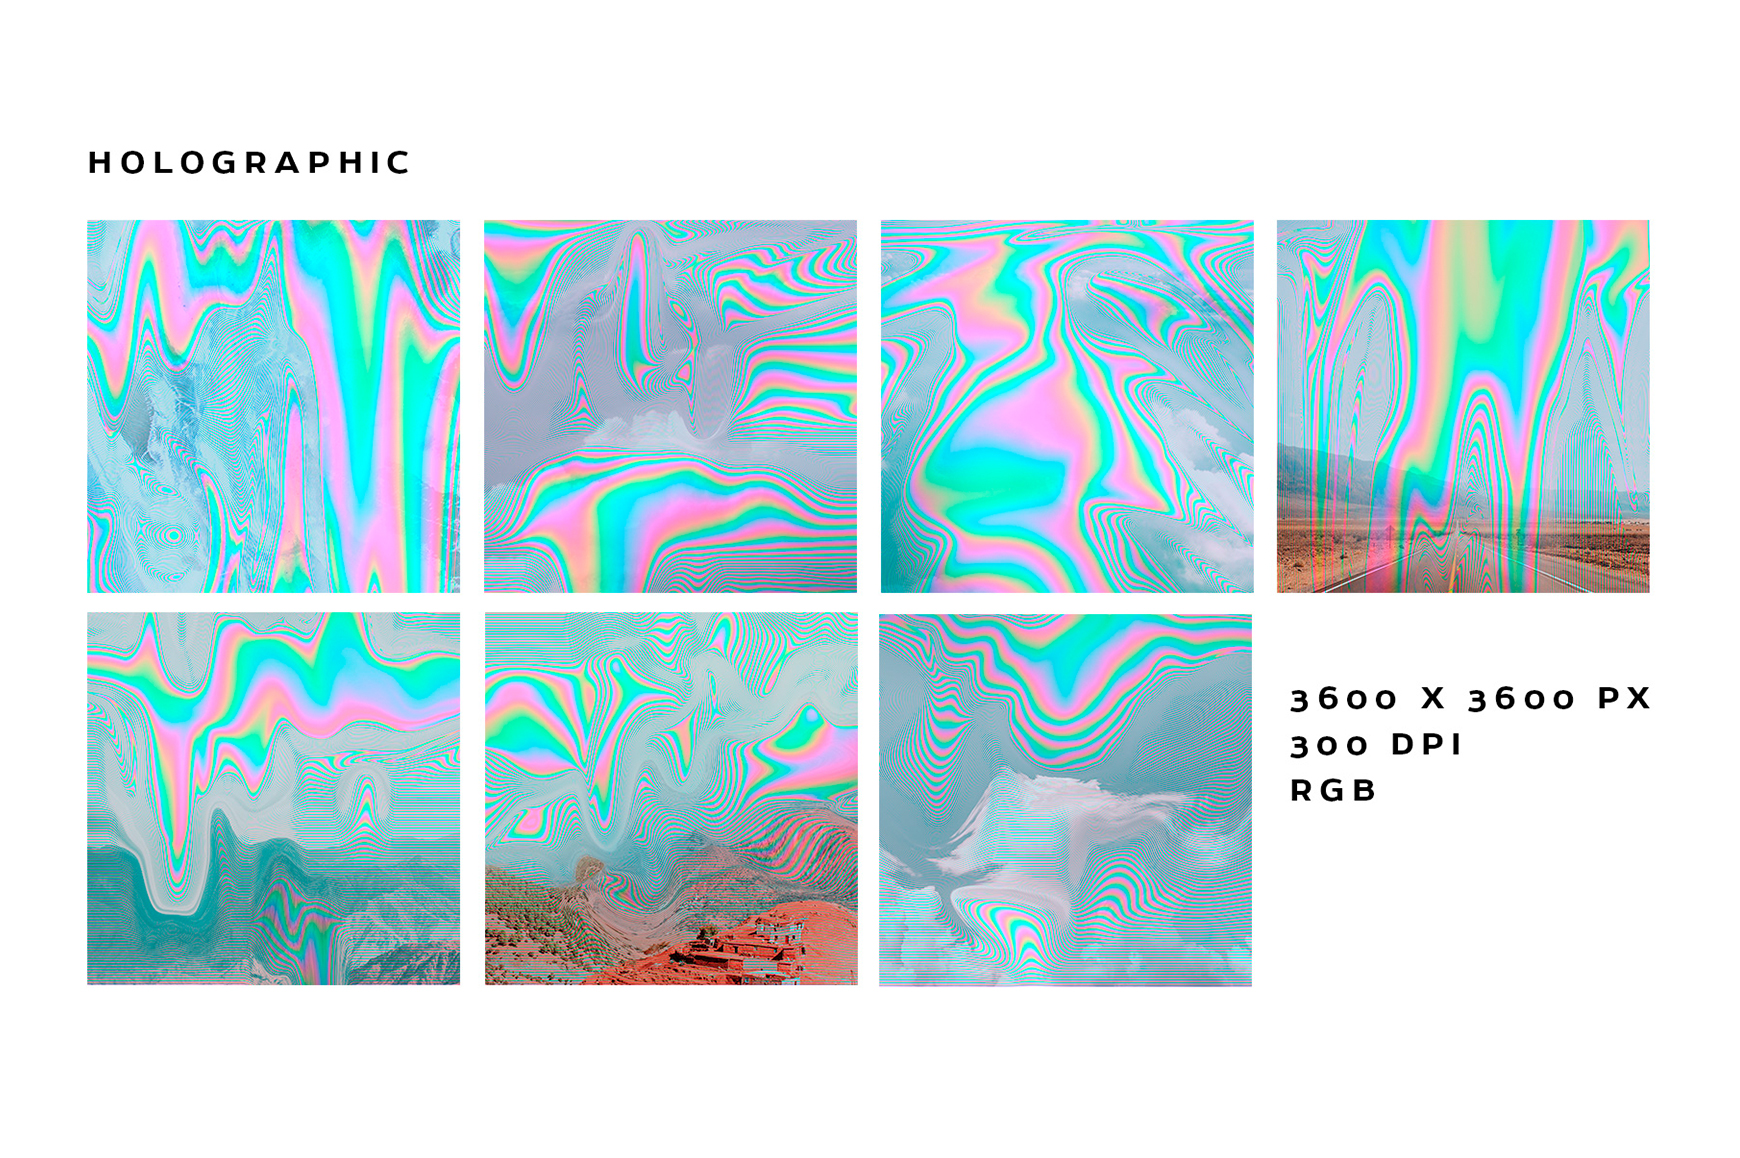 Holographic Glitch Abstract Textures